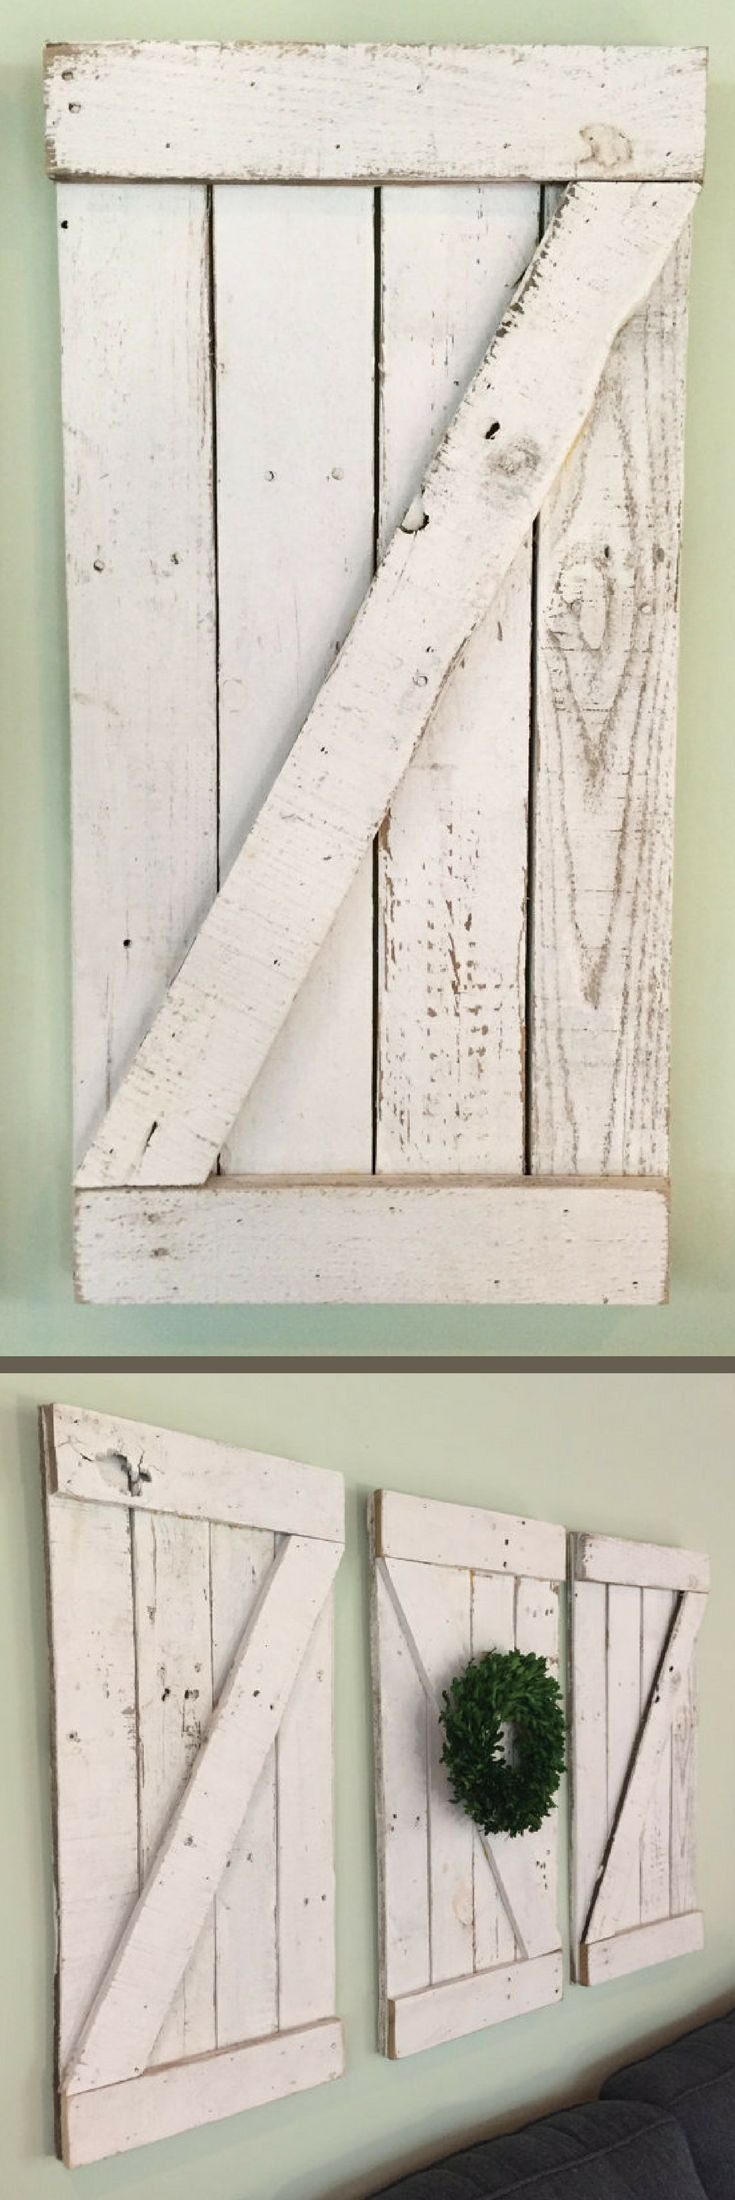 These Are Fantastic! Rustic Barn Door Wood Wall Hanging, Wooden With Latest Shutter Window Hanging Wall Decor (Gallery 14 of 20)